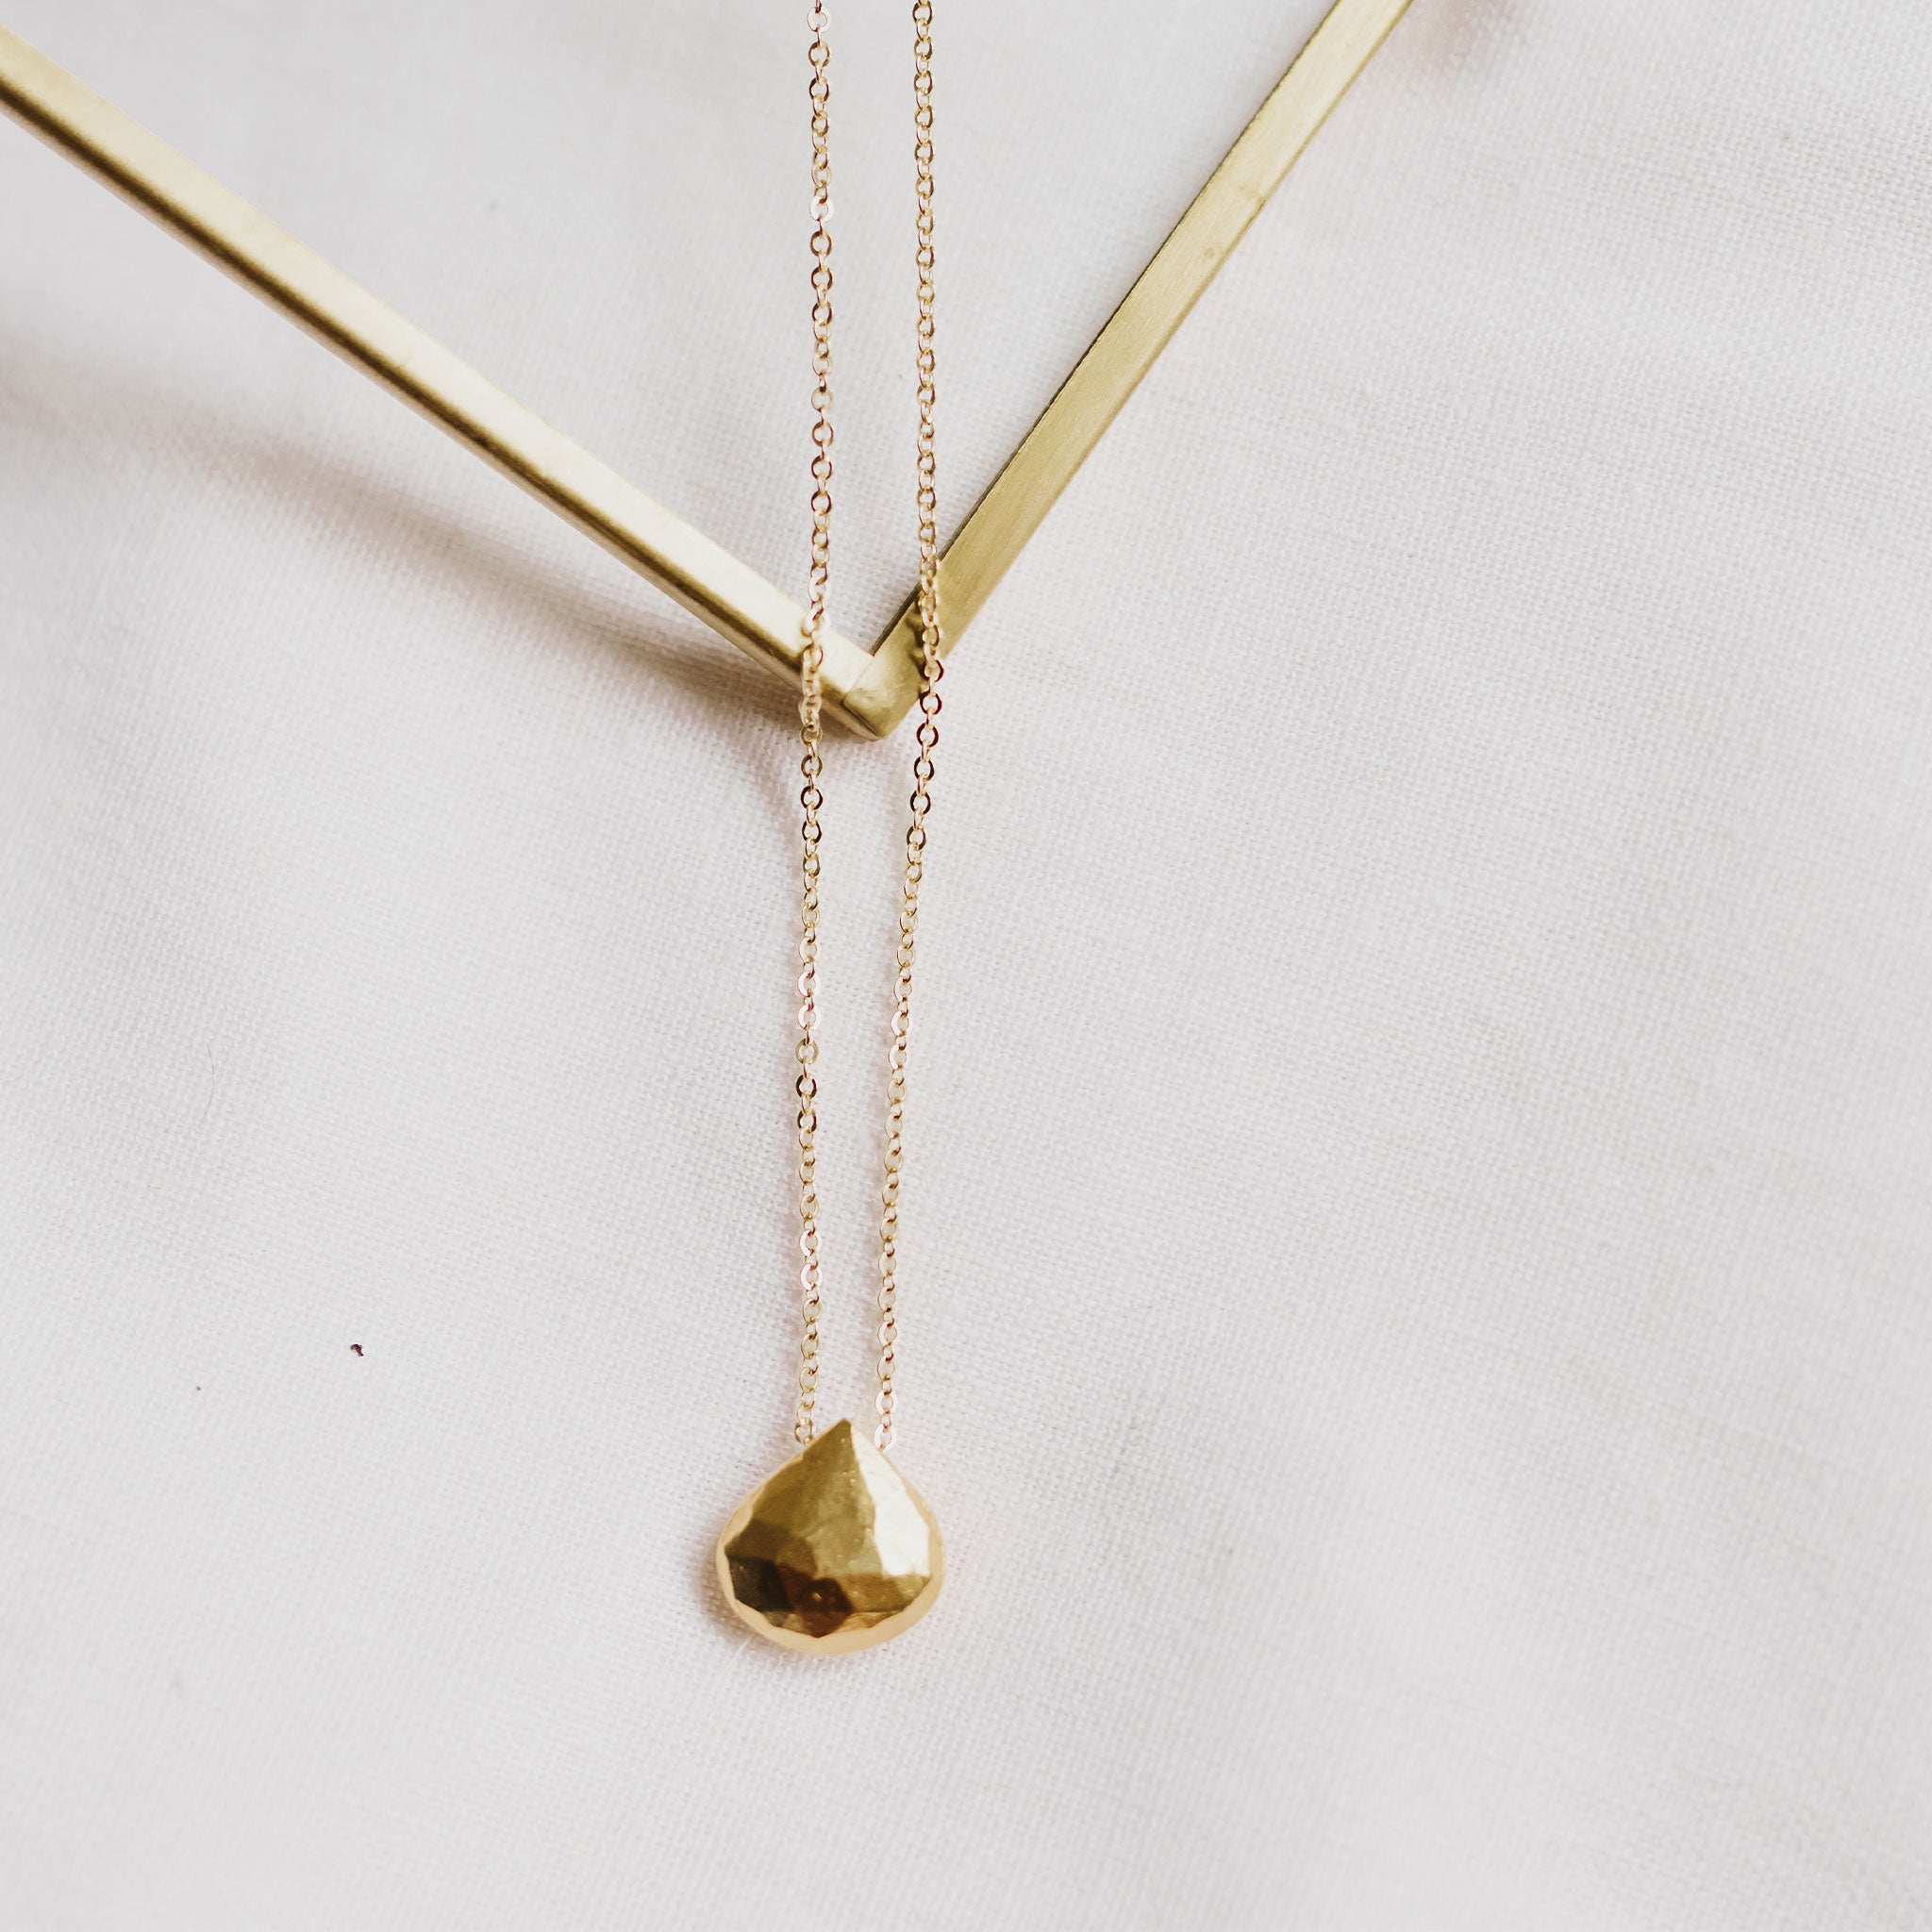 Wanderlust Life jewellery gold chain necklace with 14k gold fill gemstone. Large gold gemstone necklace with gold chain. Wanderlust Life gemstone jewellery handmade in the UK.